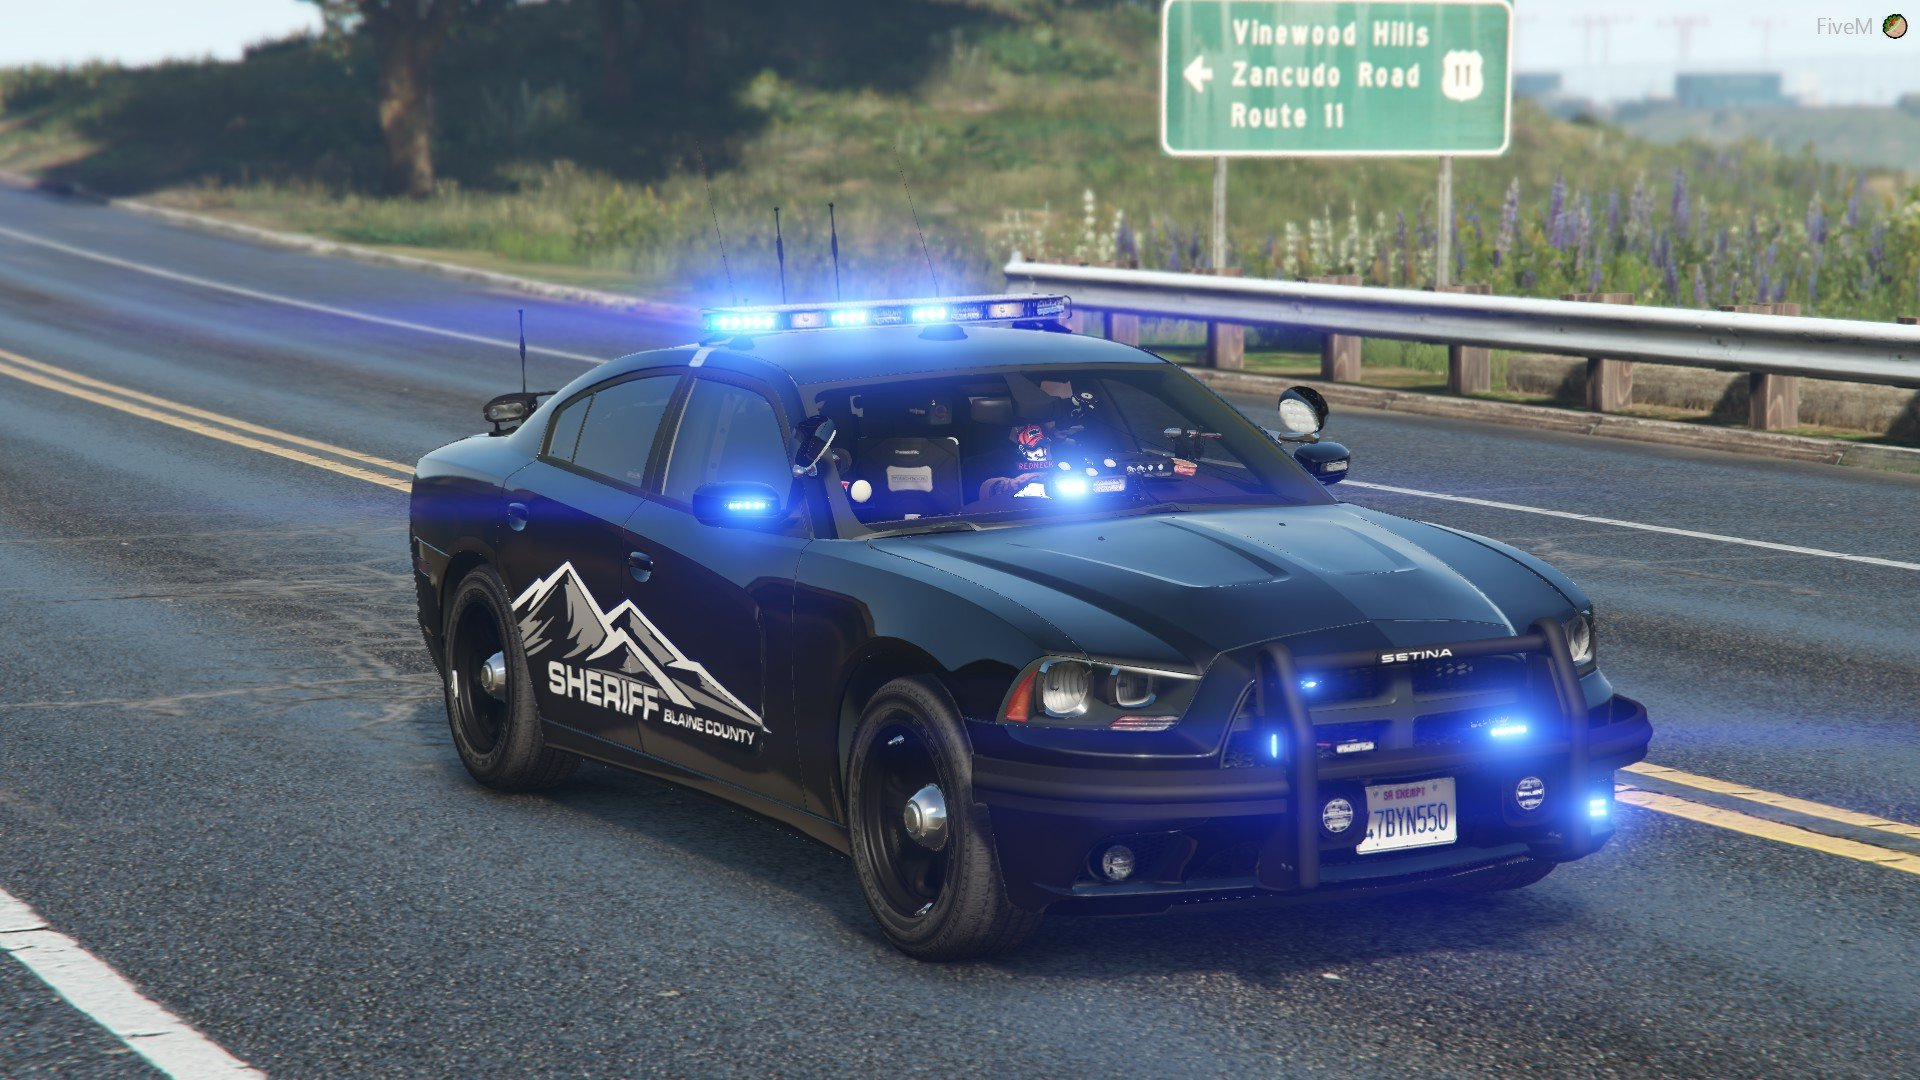 BCSO14Charger.jpg